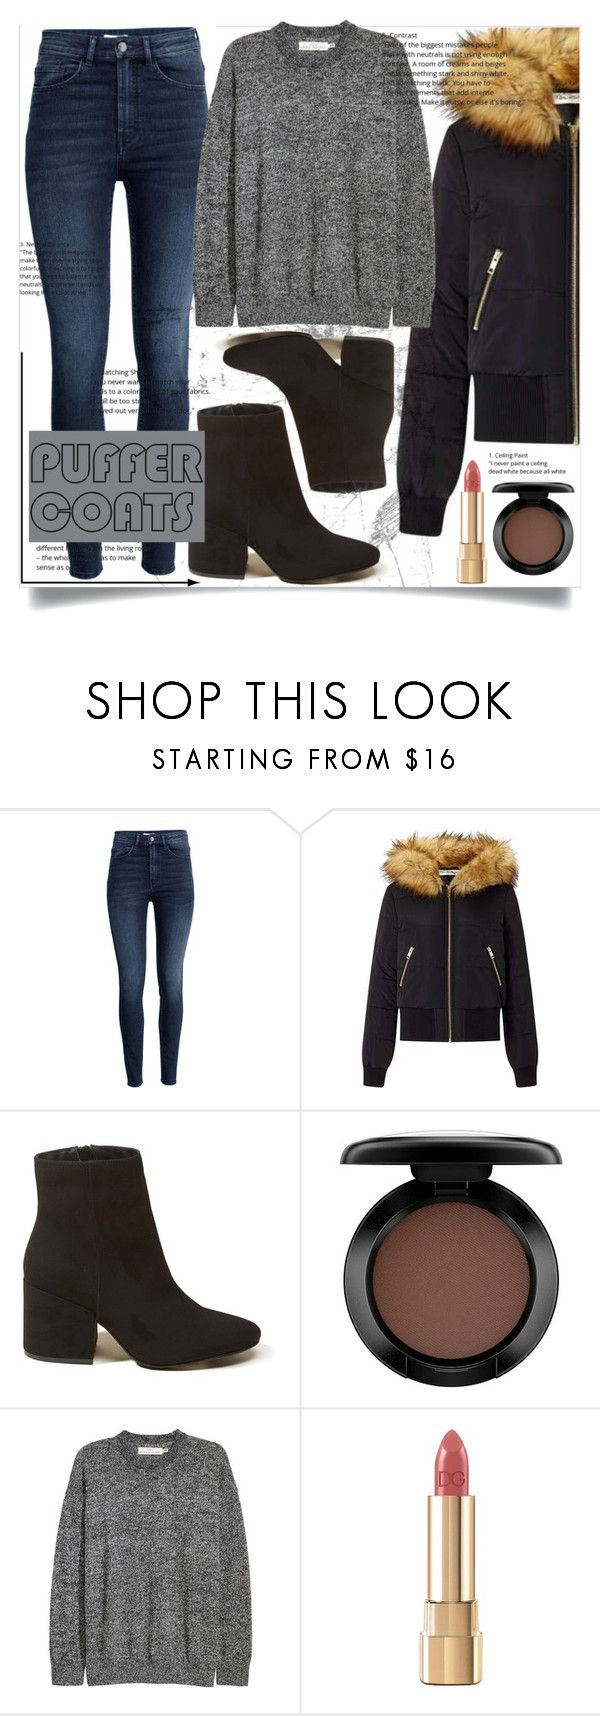 """""""Puffer Coats"""" by bitty-junkkitty ❤ liked on Polyvore featuring H&M, Miss Selfridge, Hollister Co., MAC Cosmetics and Dolce&Gabbana"""